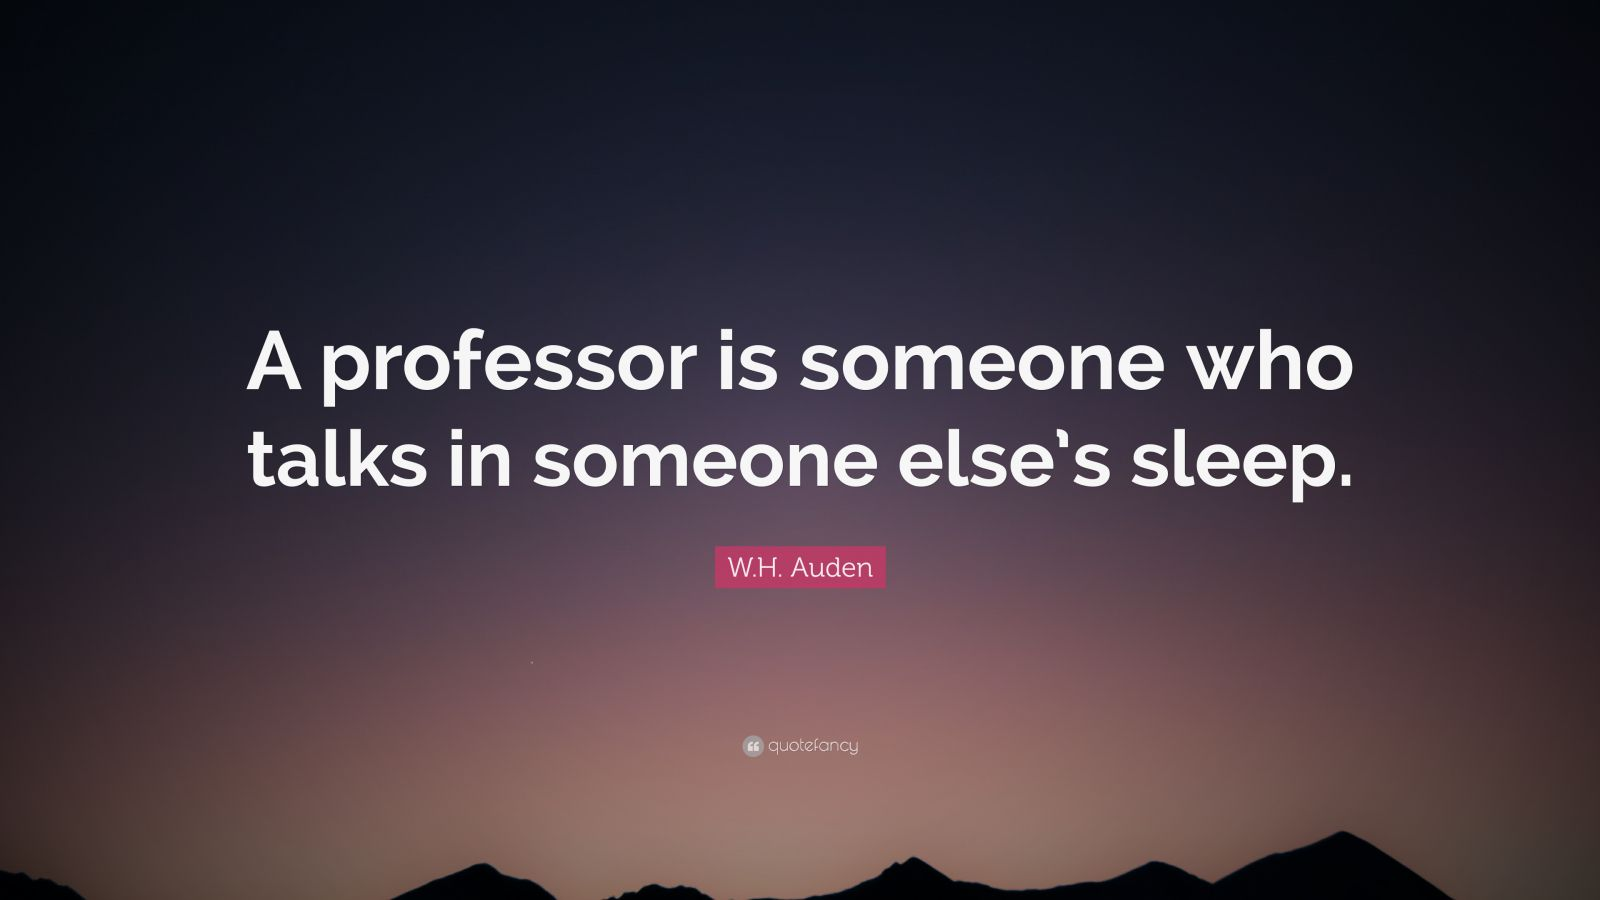 """W.H. Auden Quote: """"A professor is someone who talks in someone else's sleep."""""""